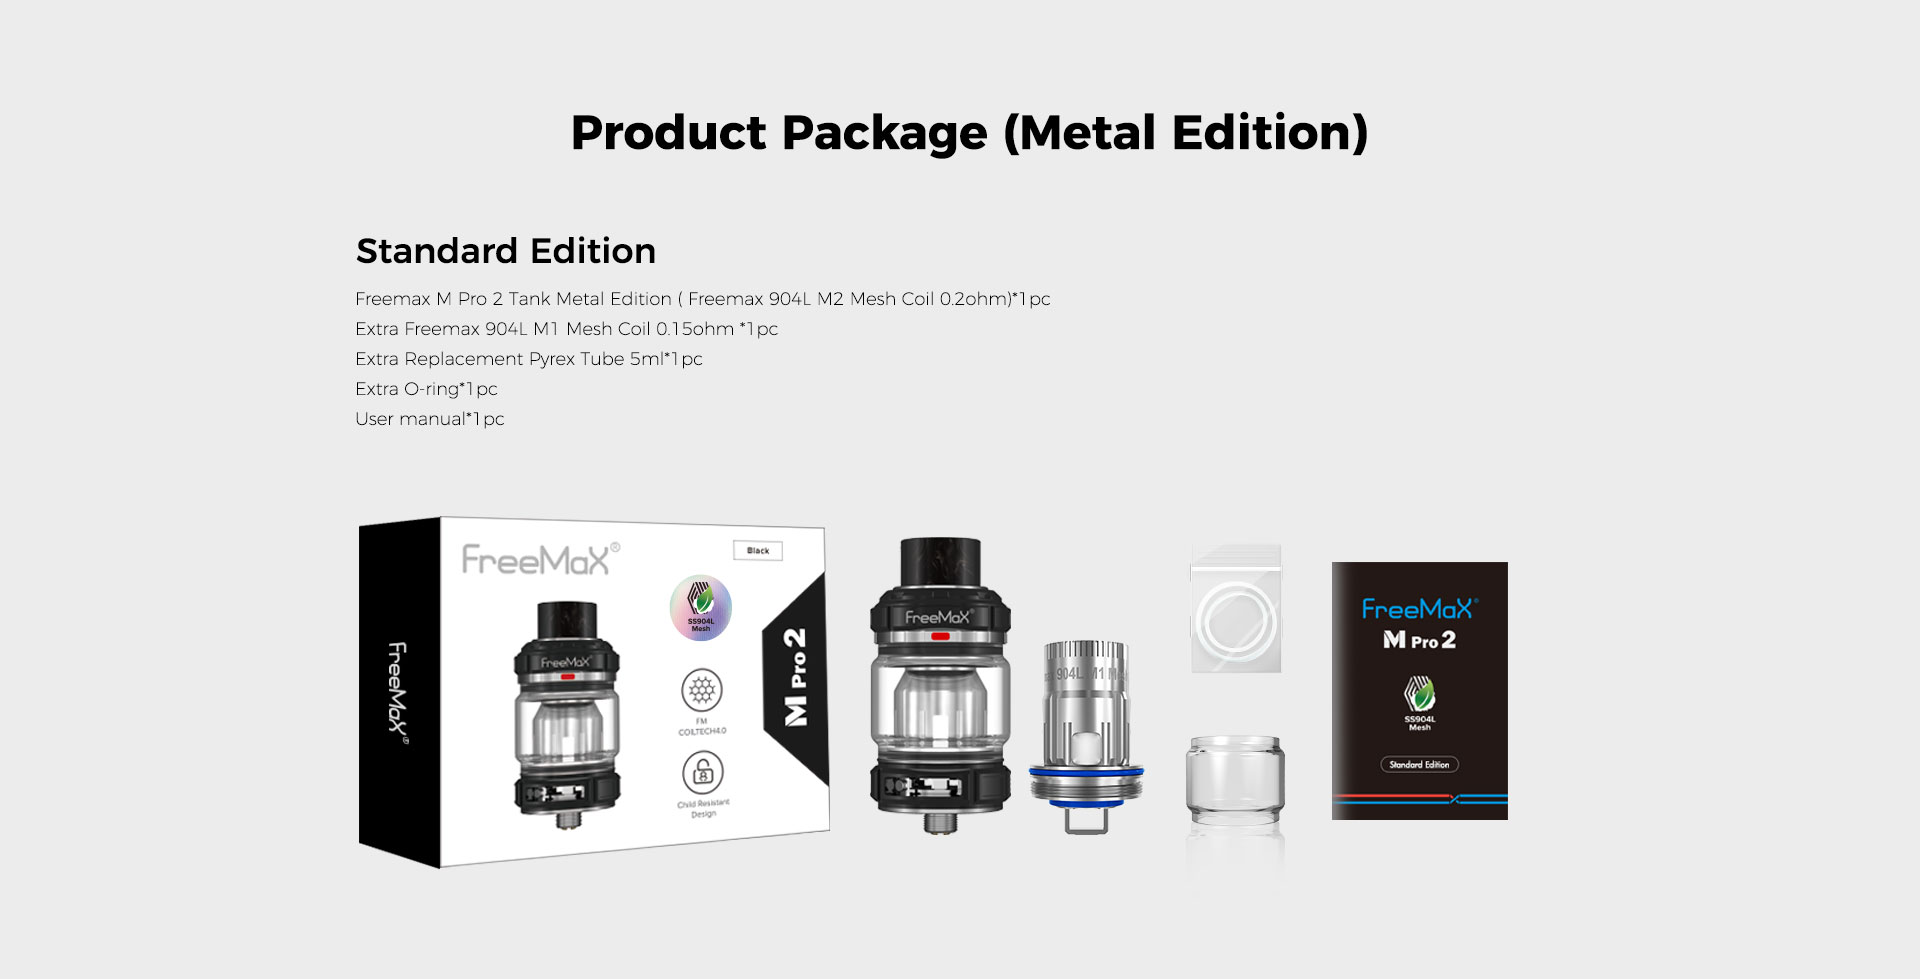 M Pro 2 Tank - Product Package(Metal Edition) Standard Edition